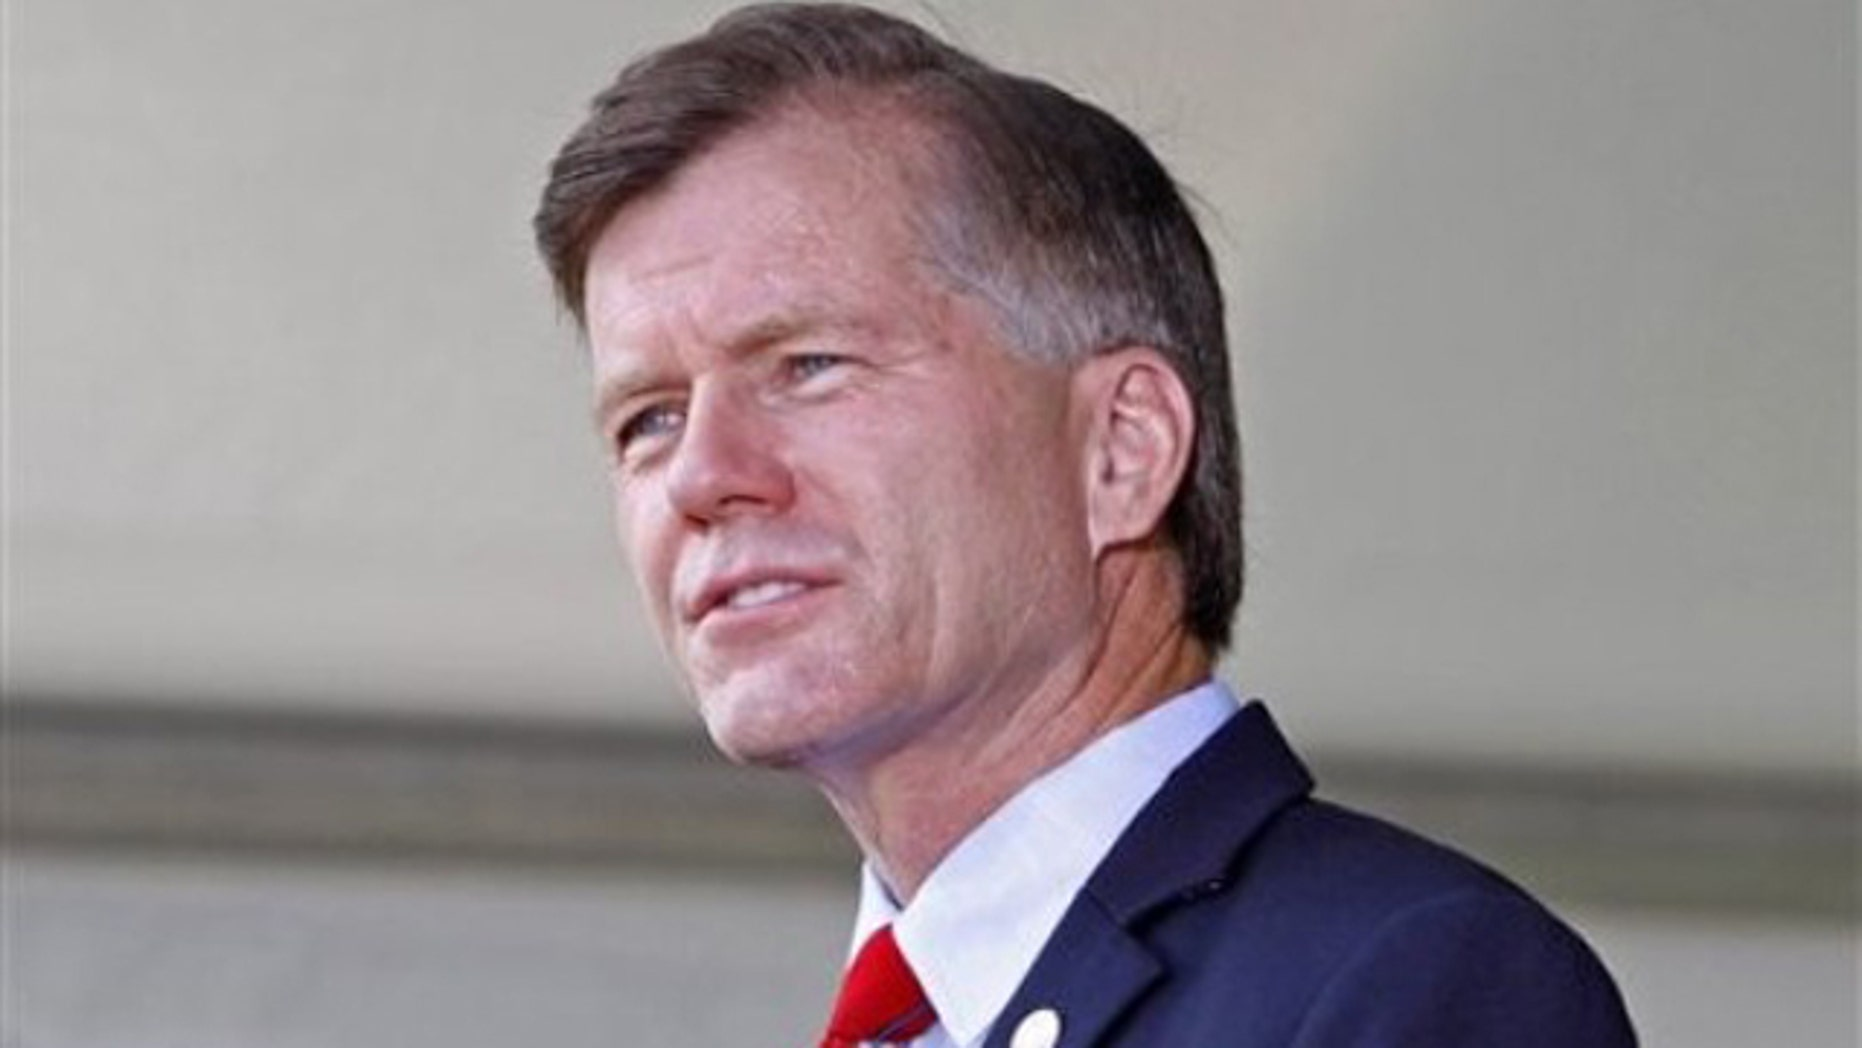 FILE: July 21, 2011: Virginia Gov. Bob McDonnell speaks in Manassas, Va. McDonnell is also chairman of the Republican Governors Association.